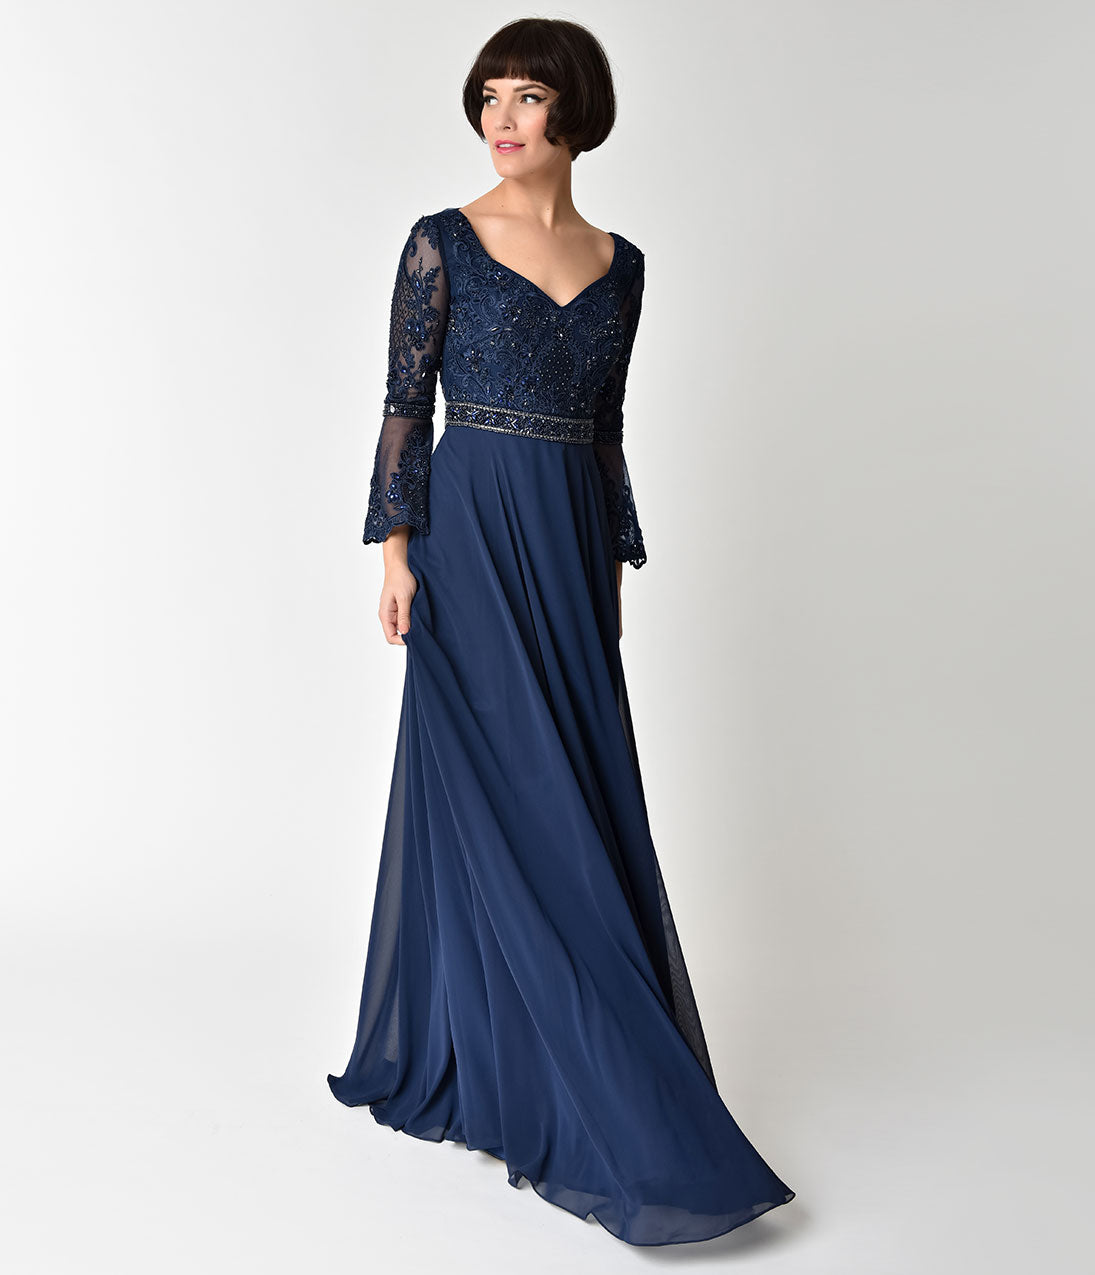 1940s Evening, Prom, Party, Cocktail Dresses & Ball Gowns Navy Blue Embellished Sheer Bell Sleeve Sweetheart Gown $168.00 AT vintagedancer.com